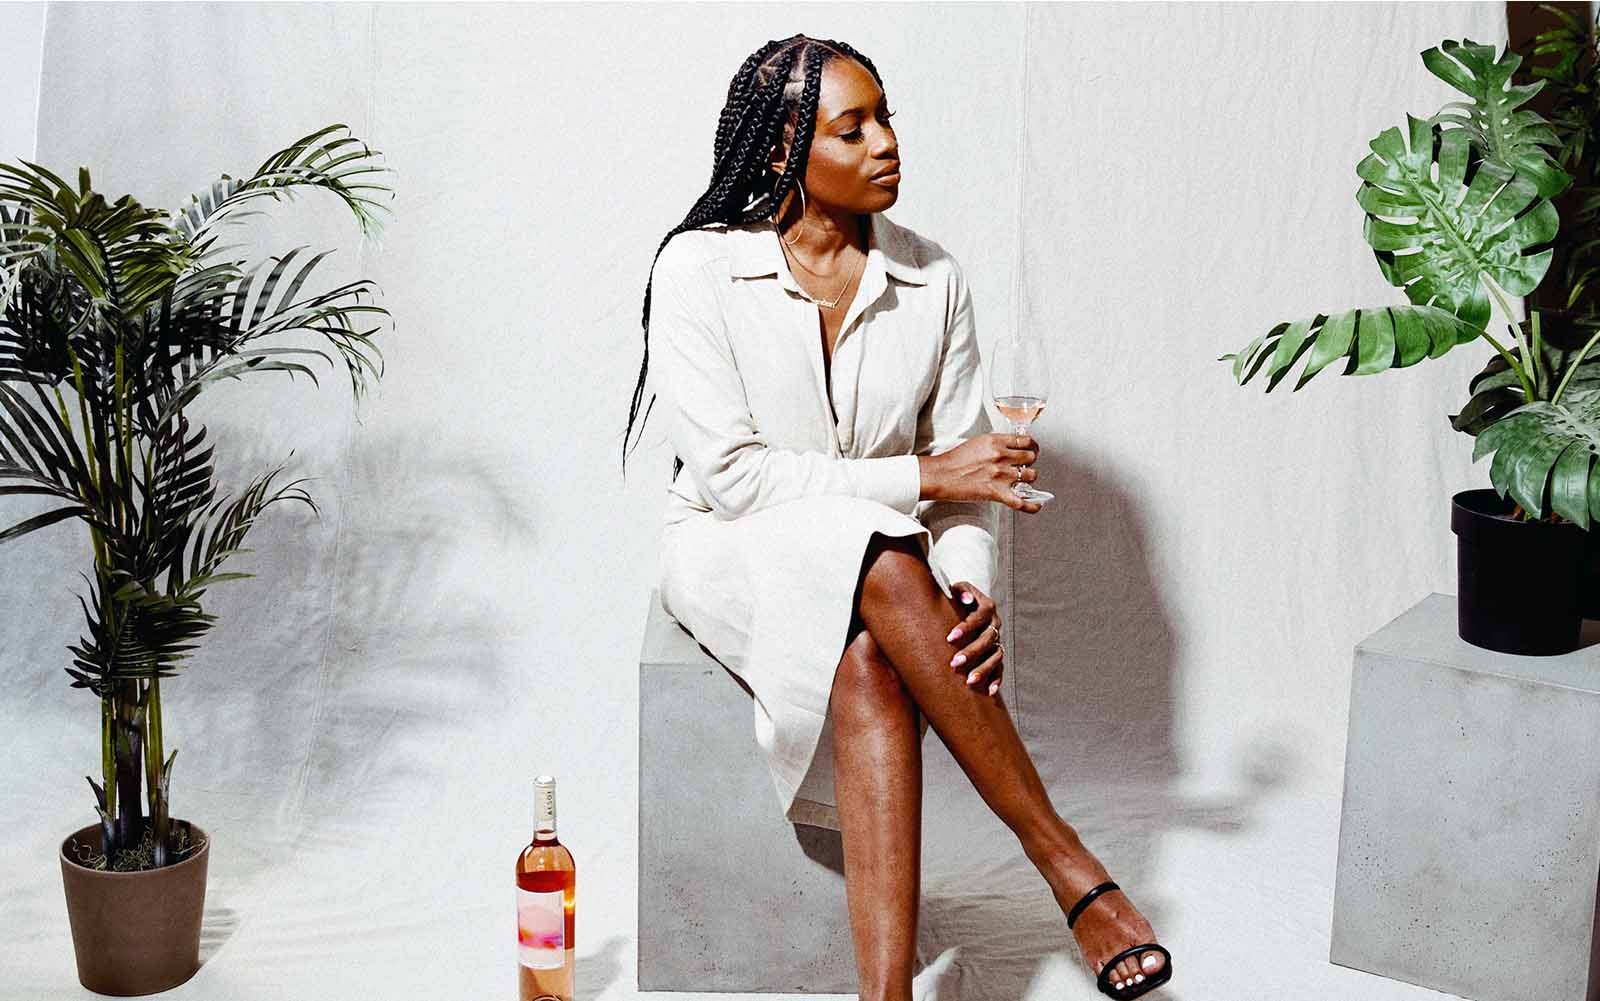 Woman drinking wine while sitting on concrete block in studio setting